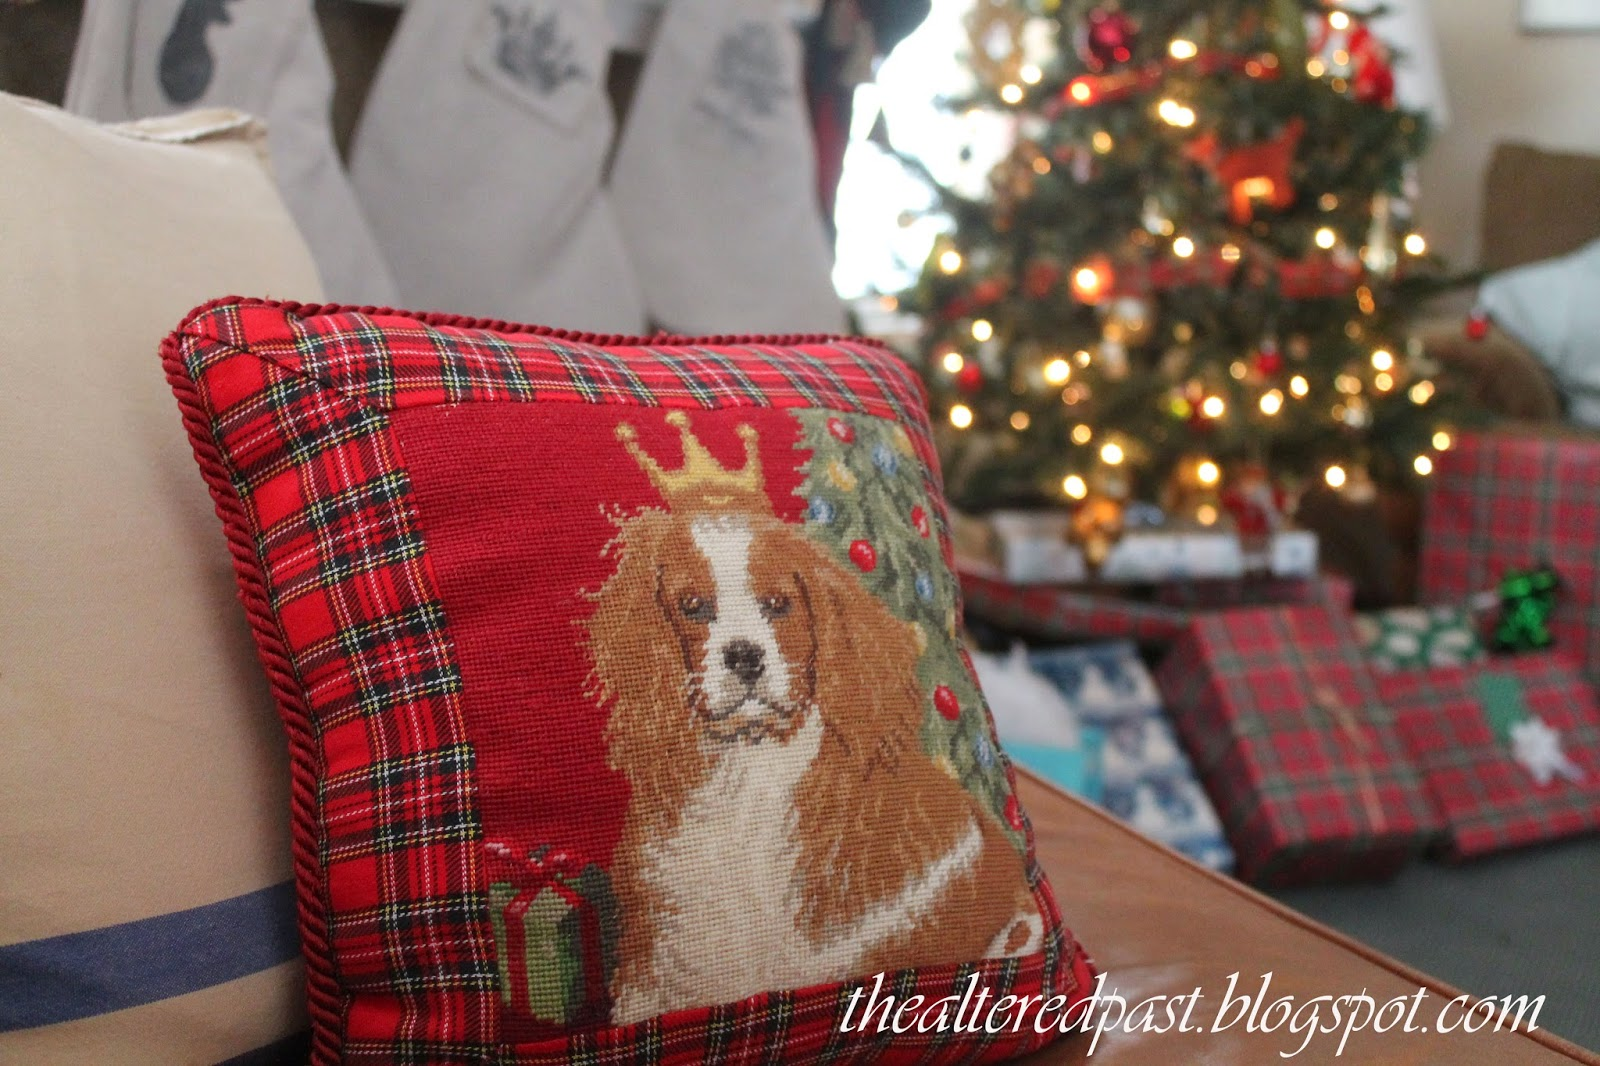 king charles spaniel needlepoint pillow, christmas home decor, the altered past